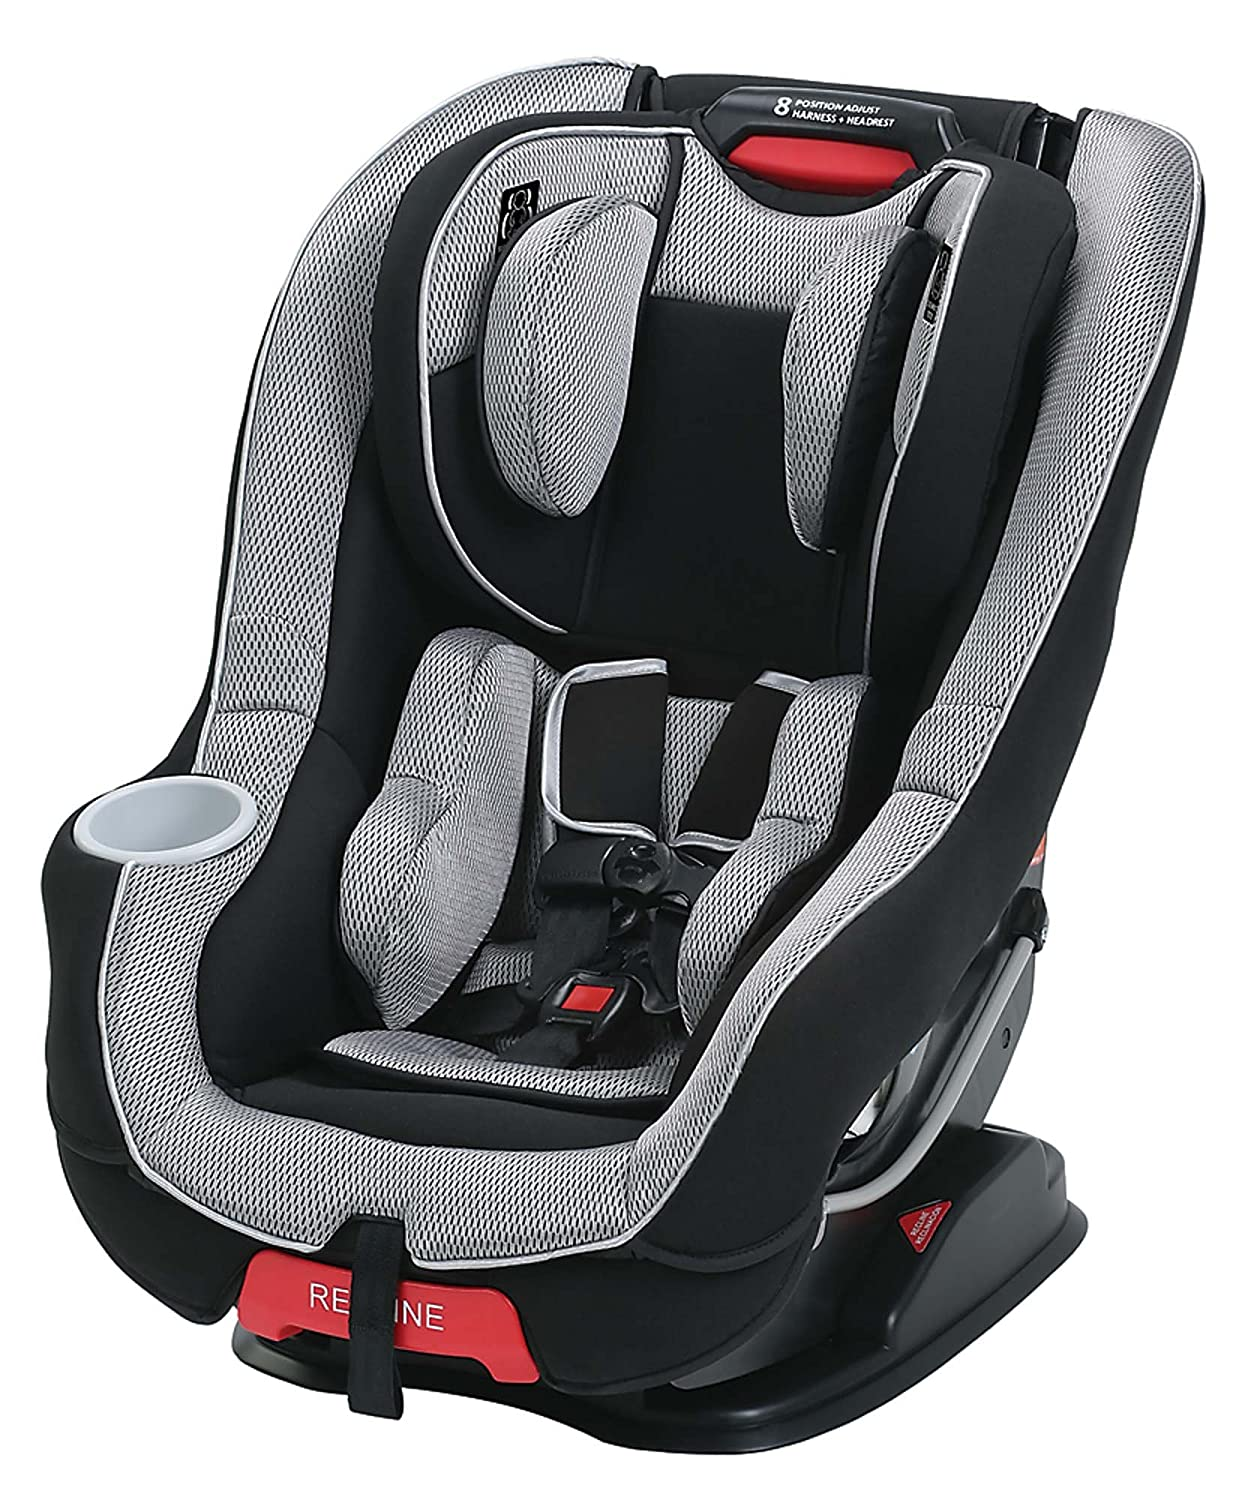 Top 5 Lightweight Car Seats In 2018 Ideal For Travels And Light To Carry